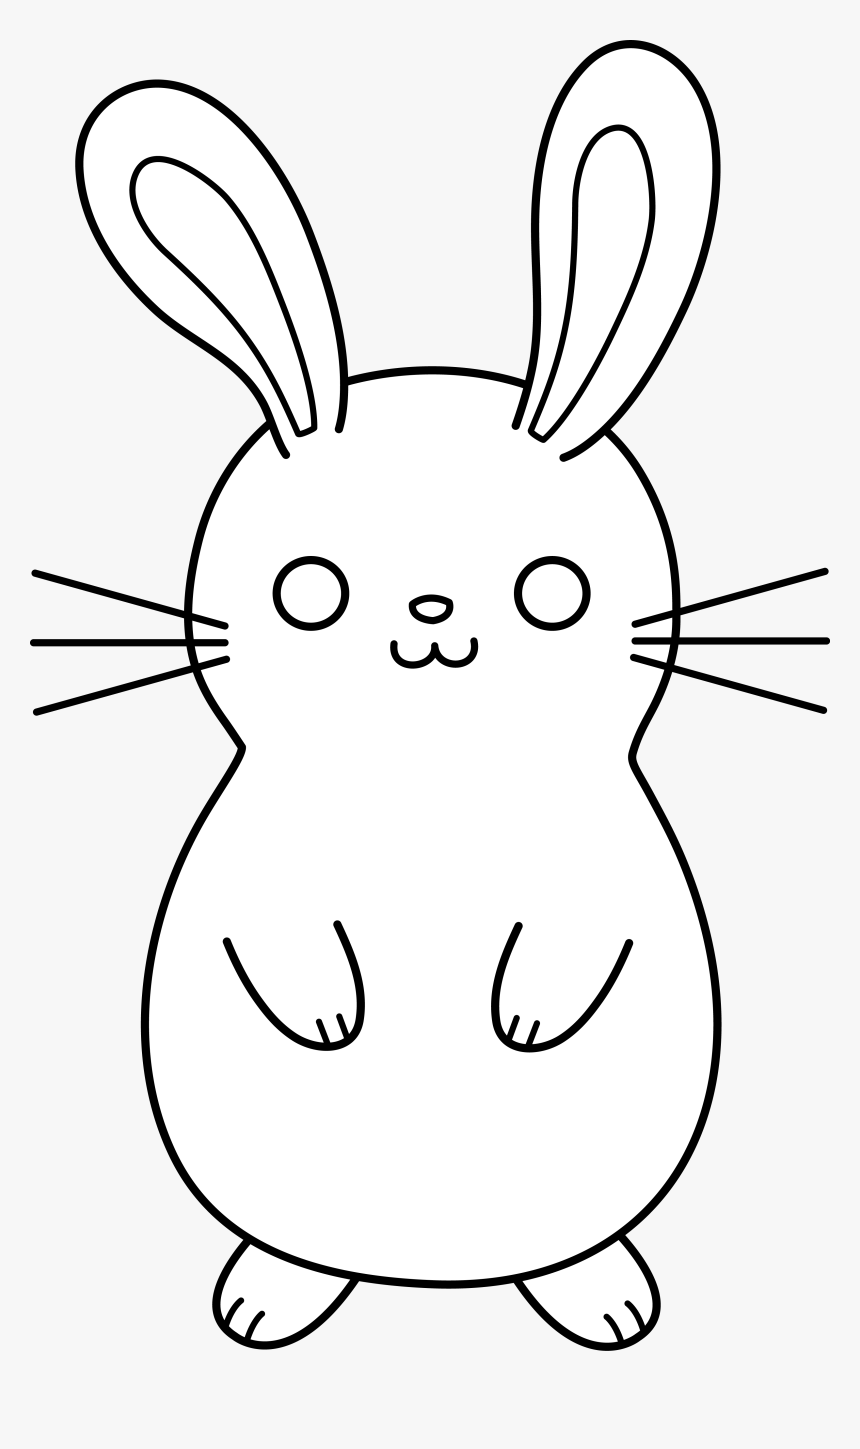 how to draw a rabbit face drawn bunny chubby bunny easy thing to draw for easter rabbit face how a draw to